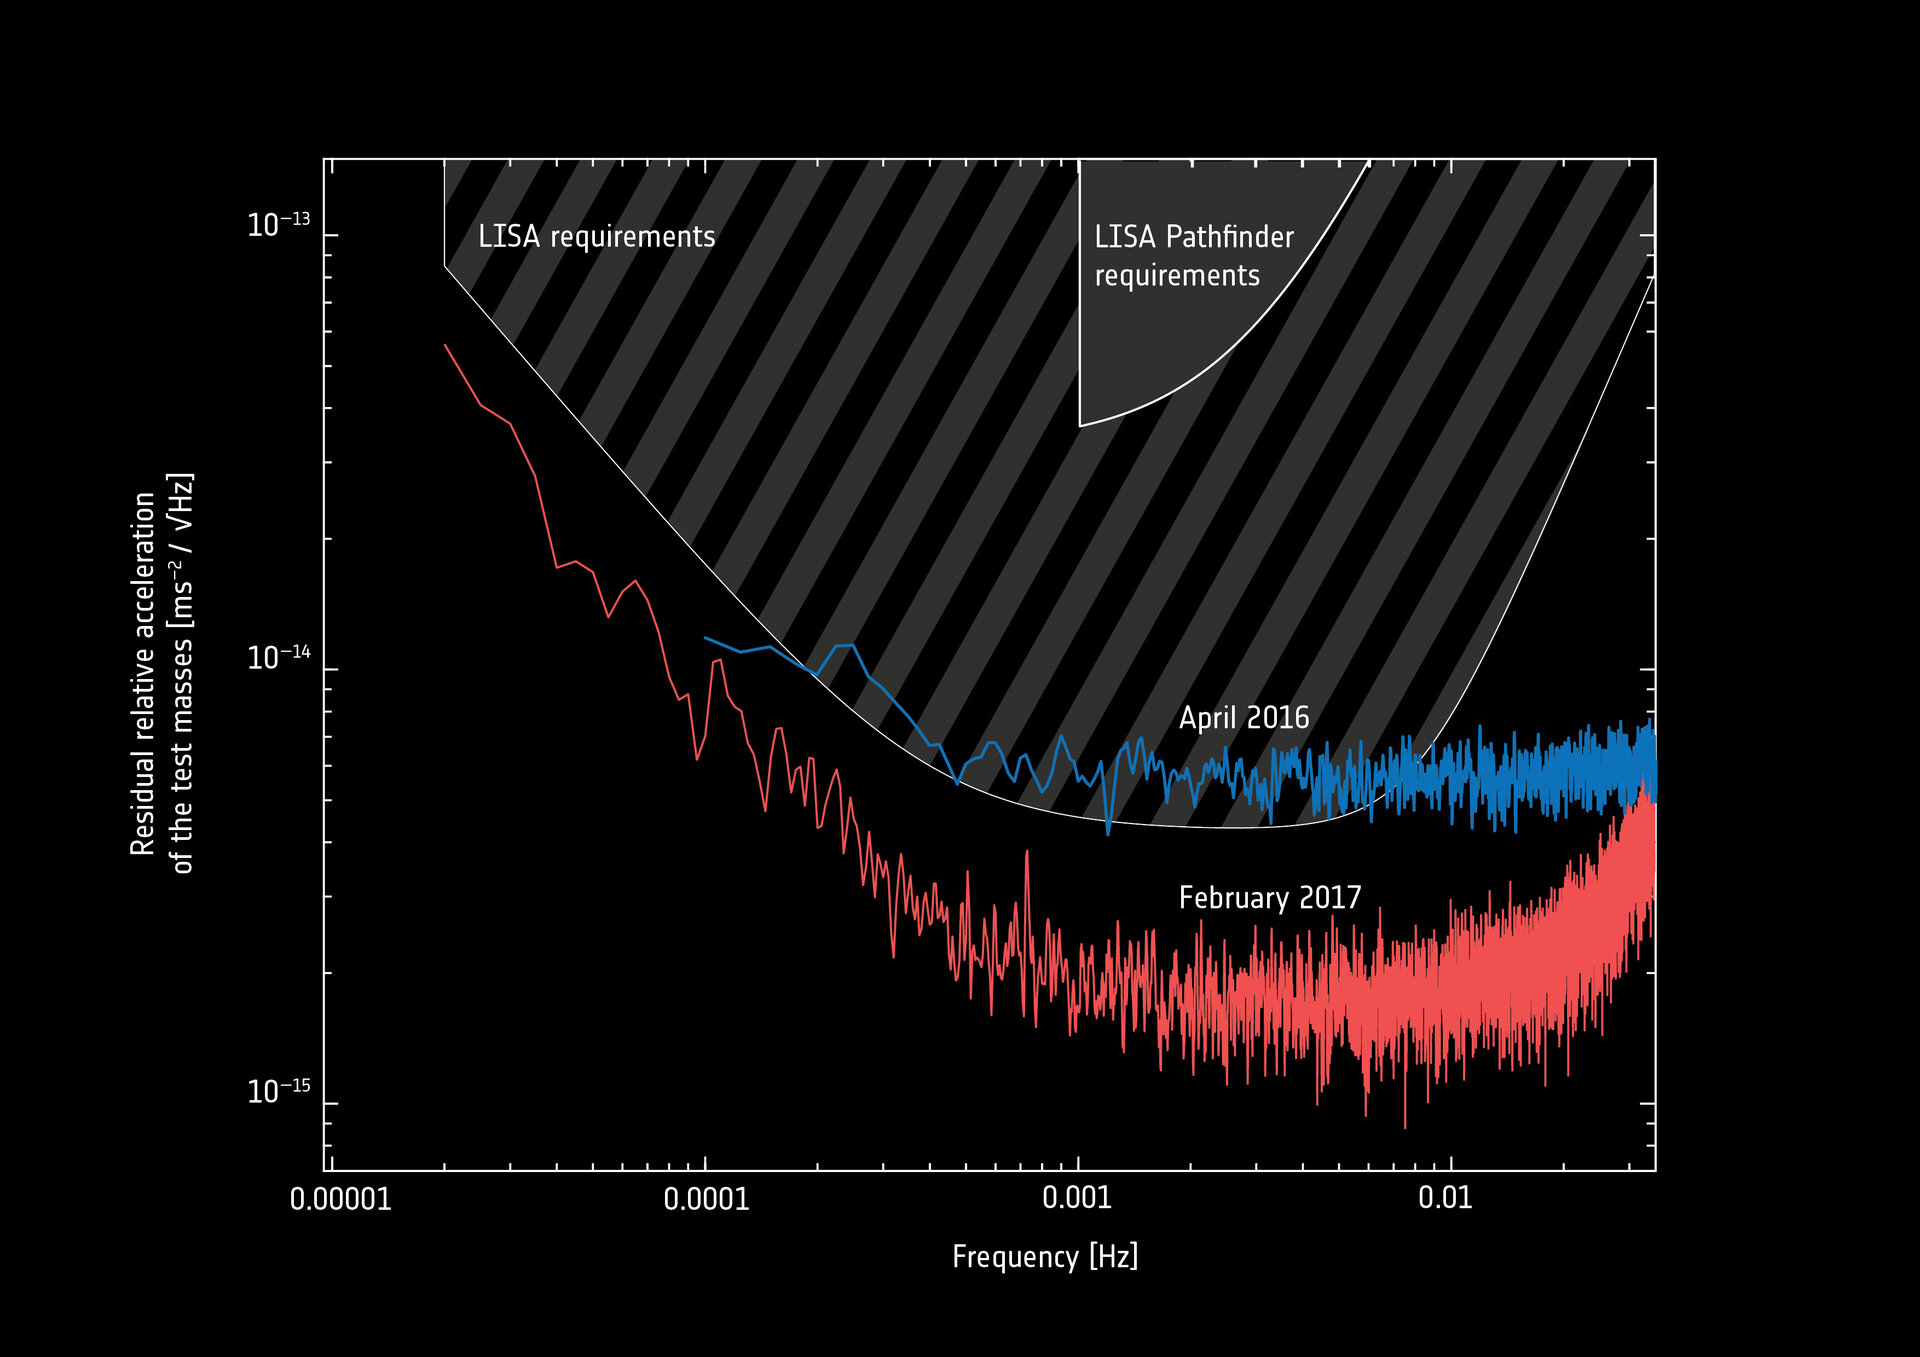 LISA Pathfinder performance analysis